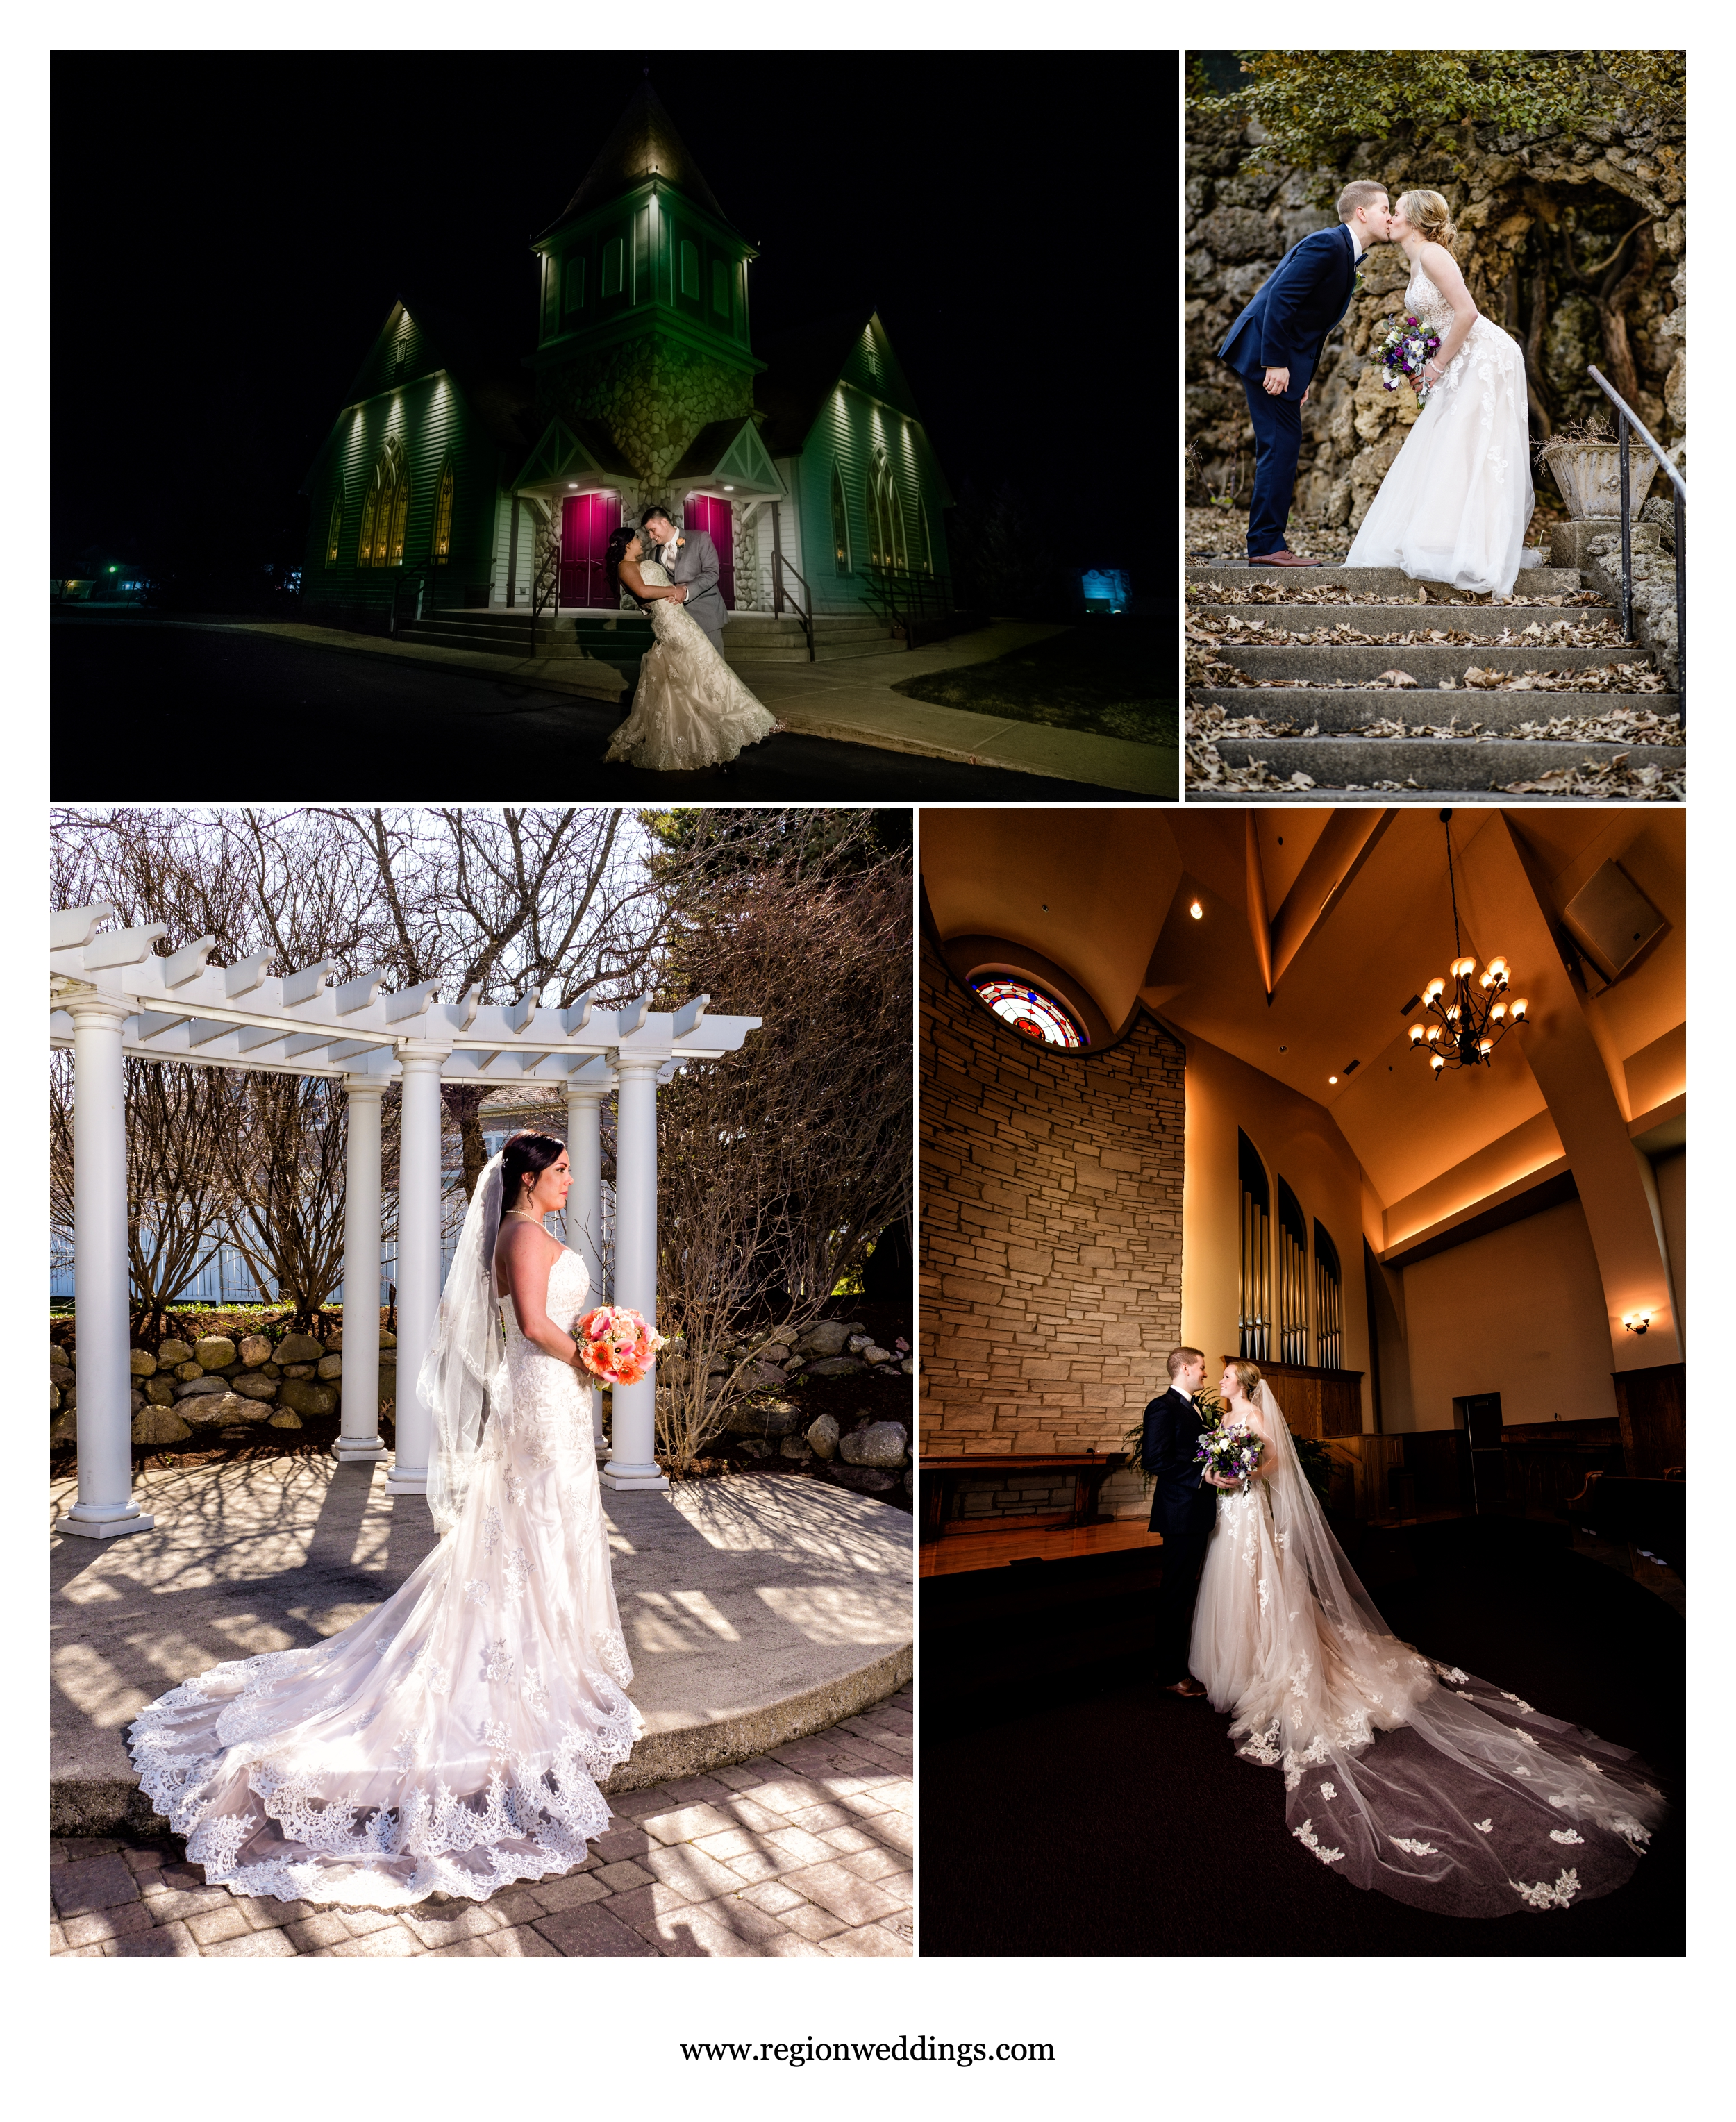 Late winter 2018 weddings in Valparaiso, Indiana and Grant Park, Illinois.